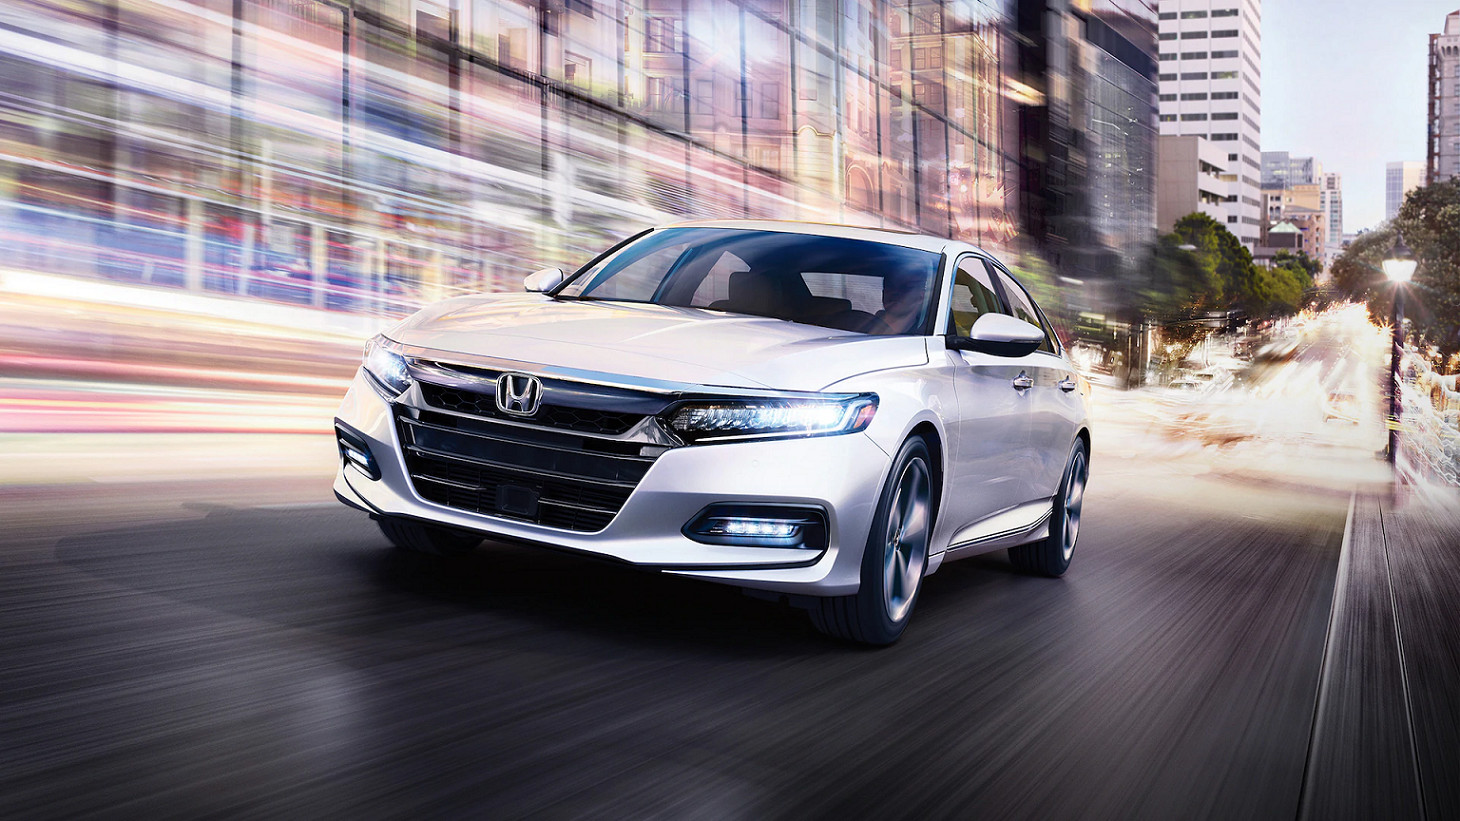 2020 Honda Accord Leasing near College Park, MD